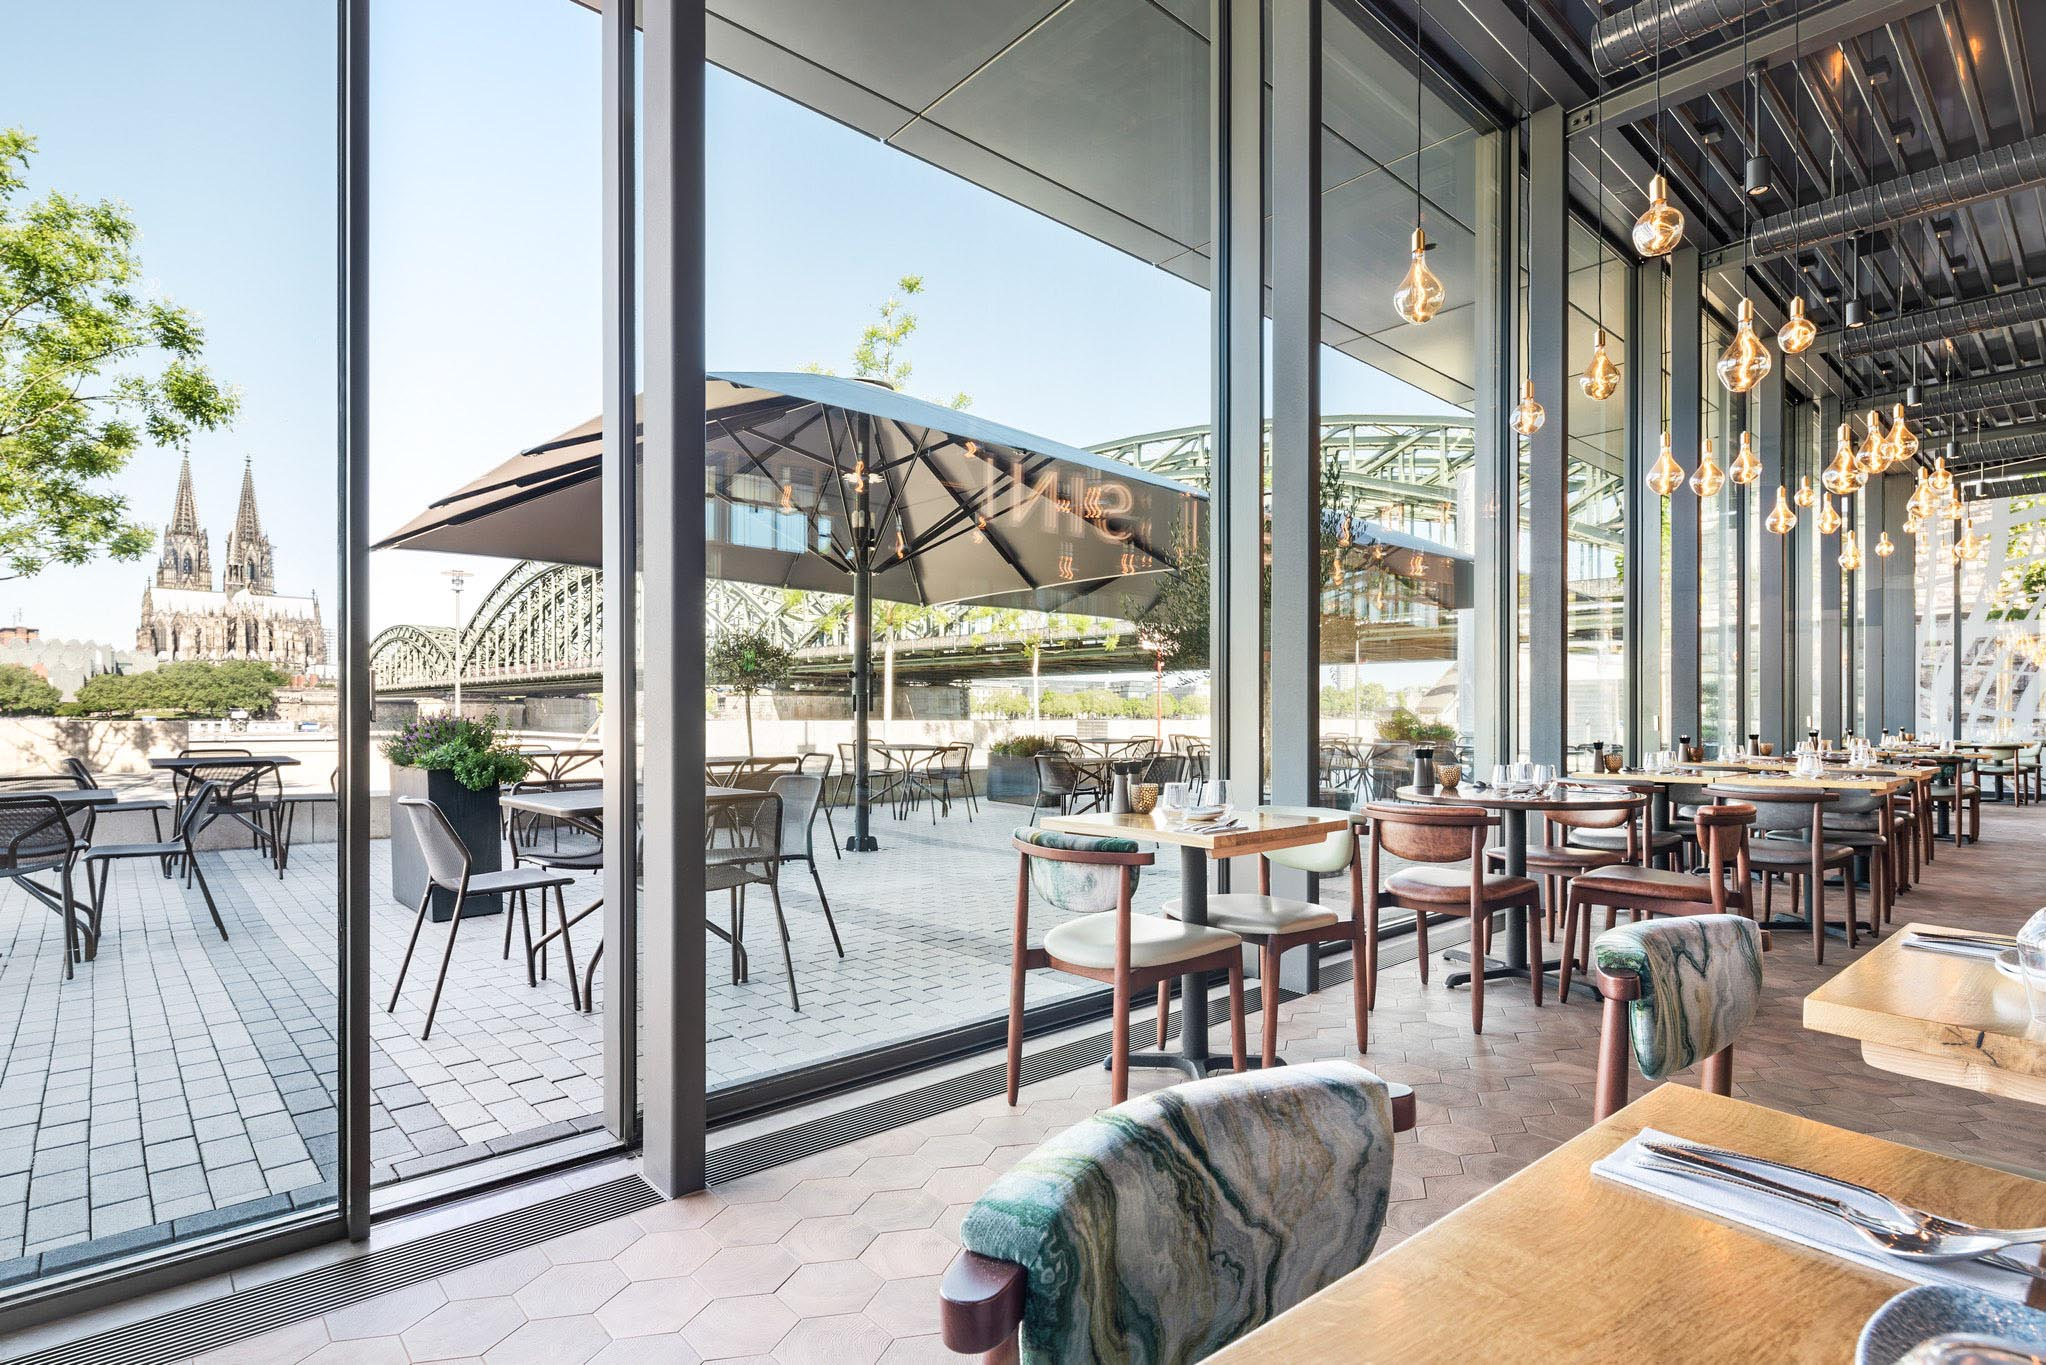 restaurant spaces designed with minimal sliding glass walls for fresh air and daylight